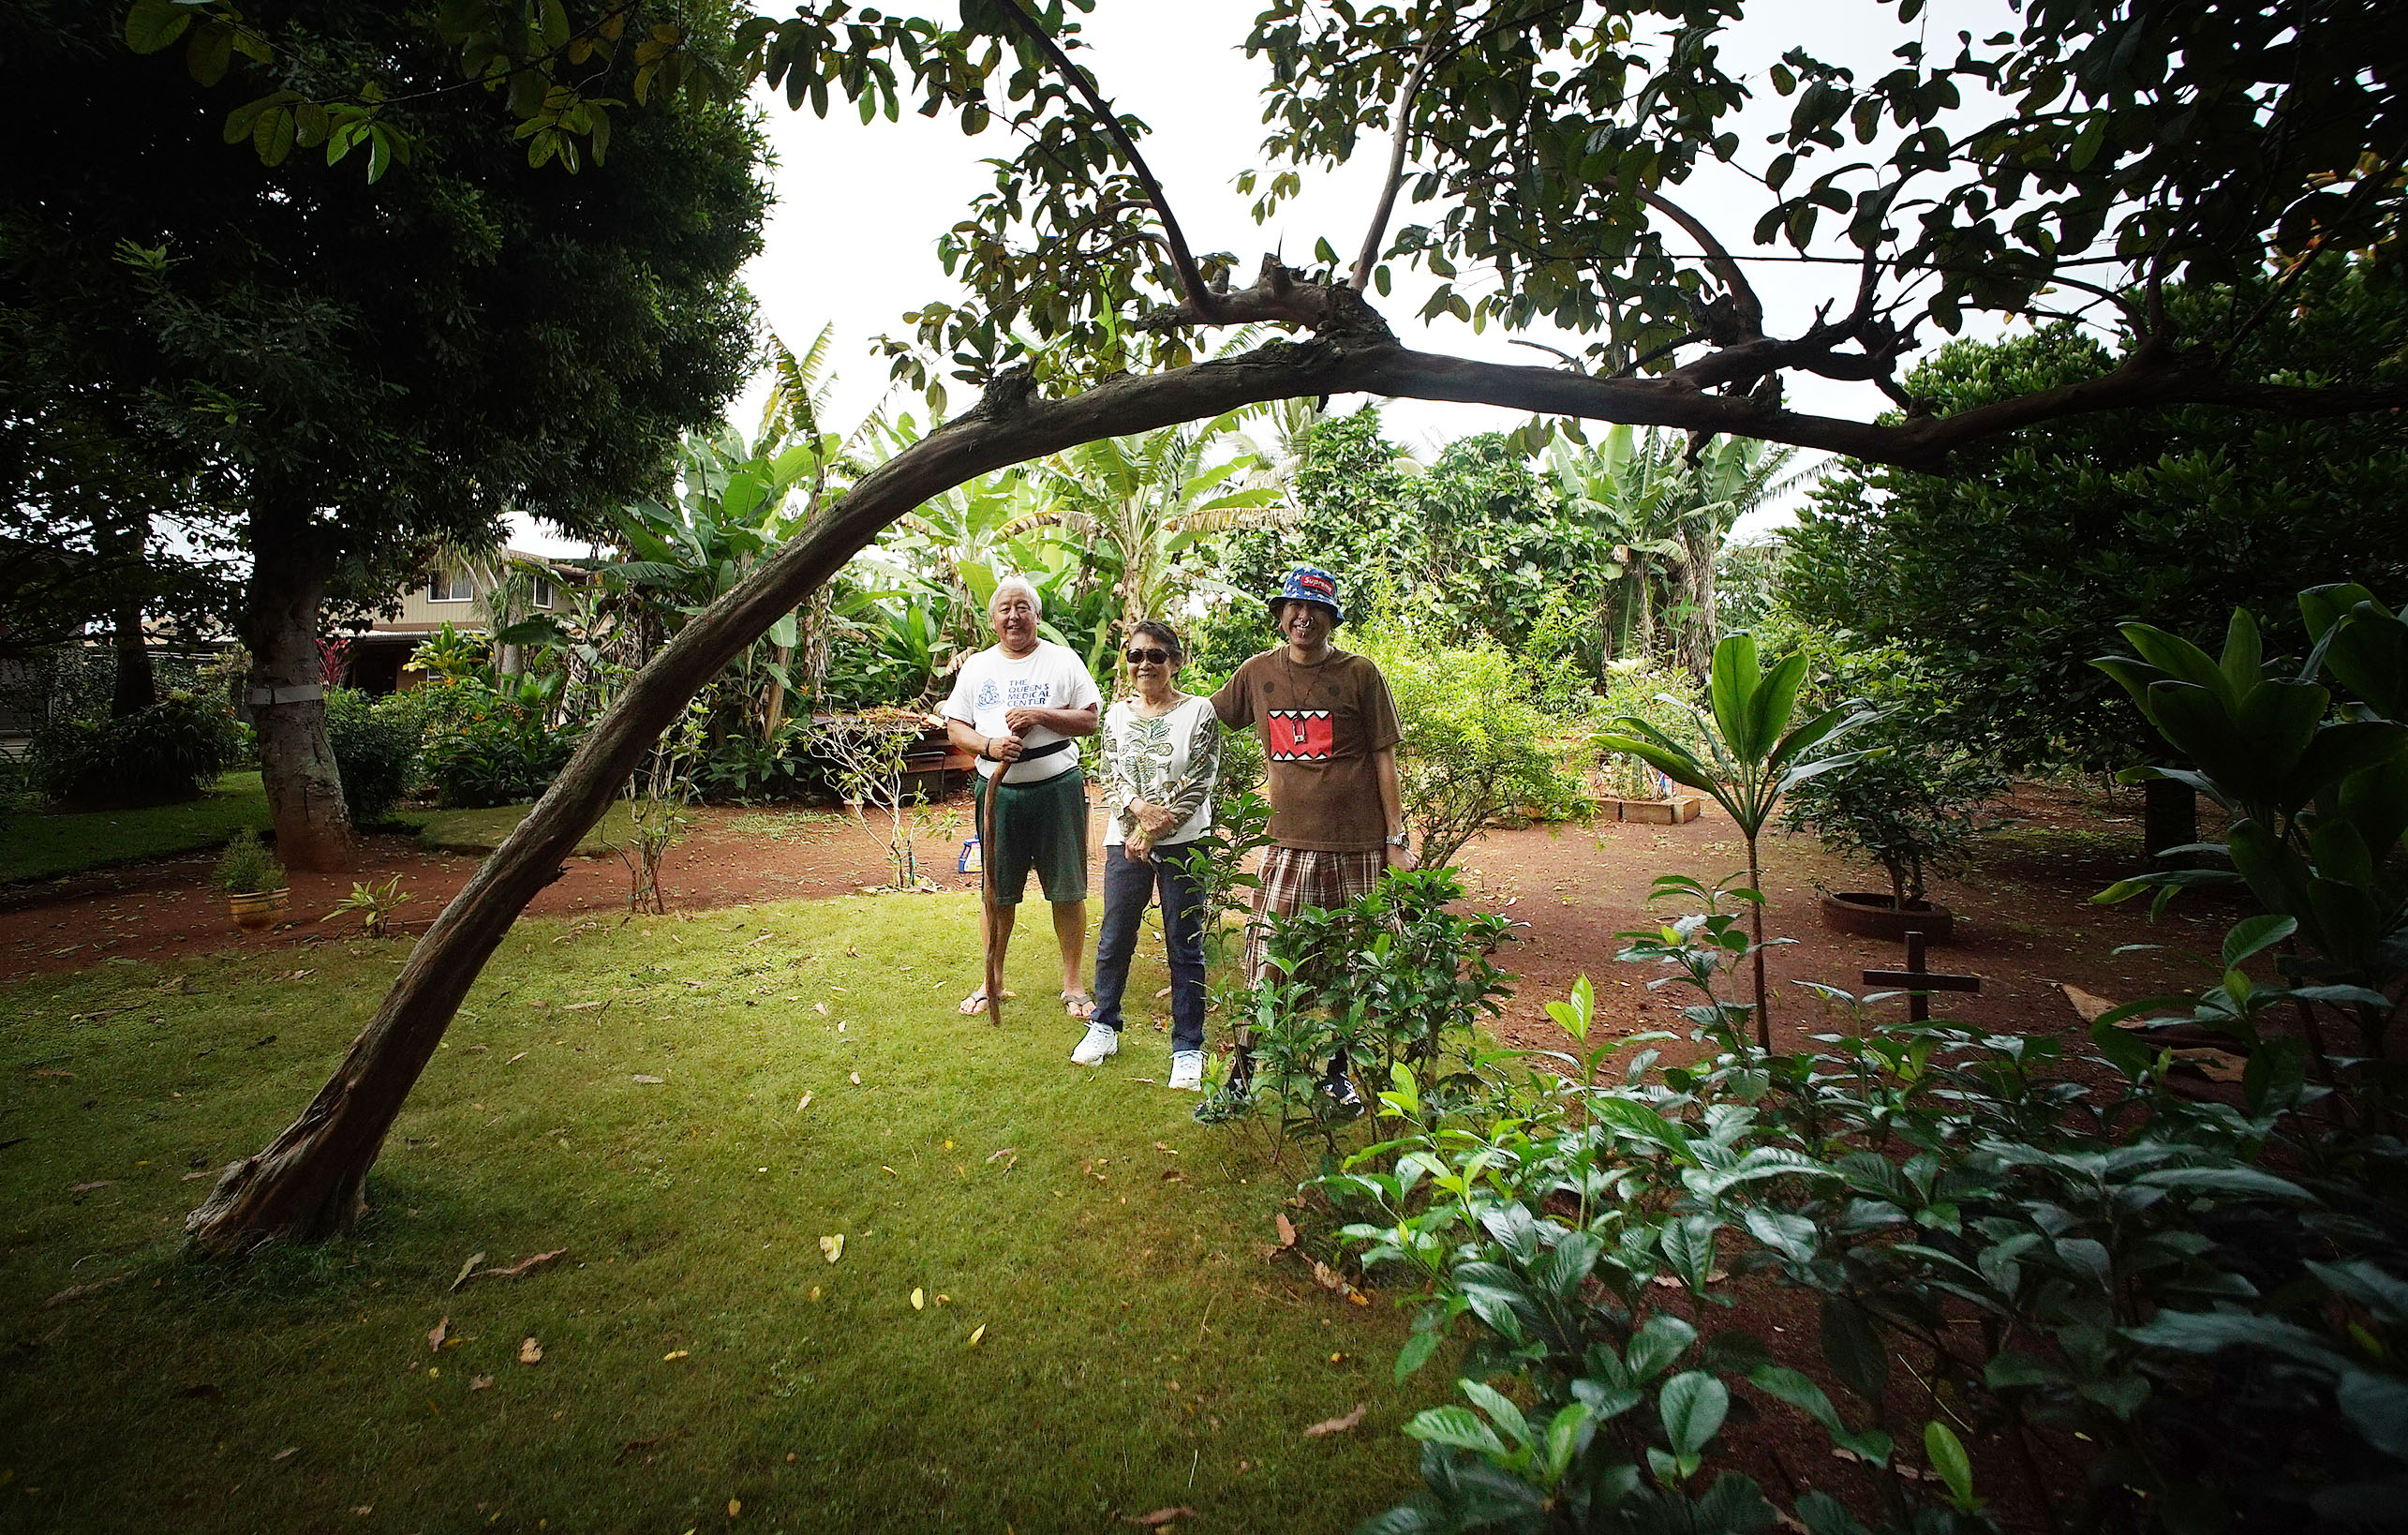 Dennis Nonaka stands with Guava tree his mom planted on their property in Whitemore Village.